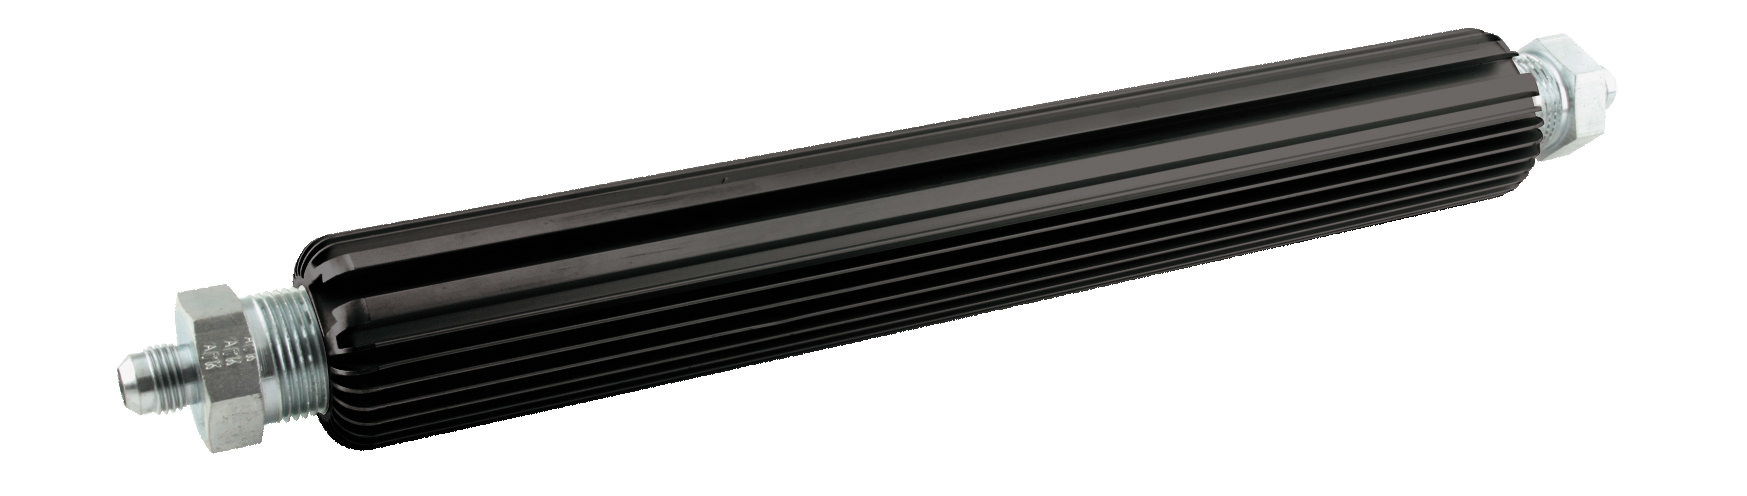 Allstar Performance 52102 Fluid Cooler, 12 x 1-3/4 in, Heat Sink, 3/4 in NPT Female Inlet / Outlet, 6 AN Male Adapter, Aluminum, Black Anodized, Universal, Each